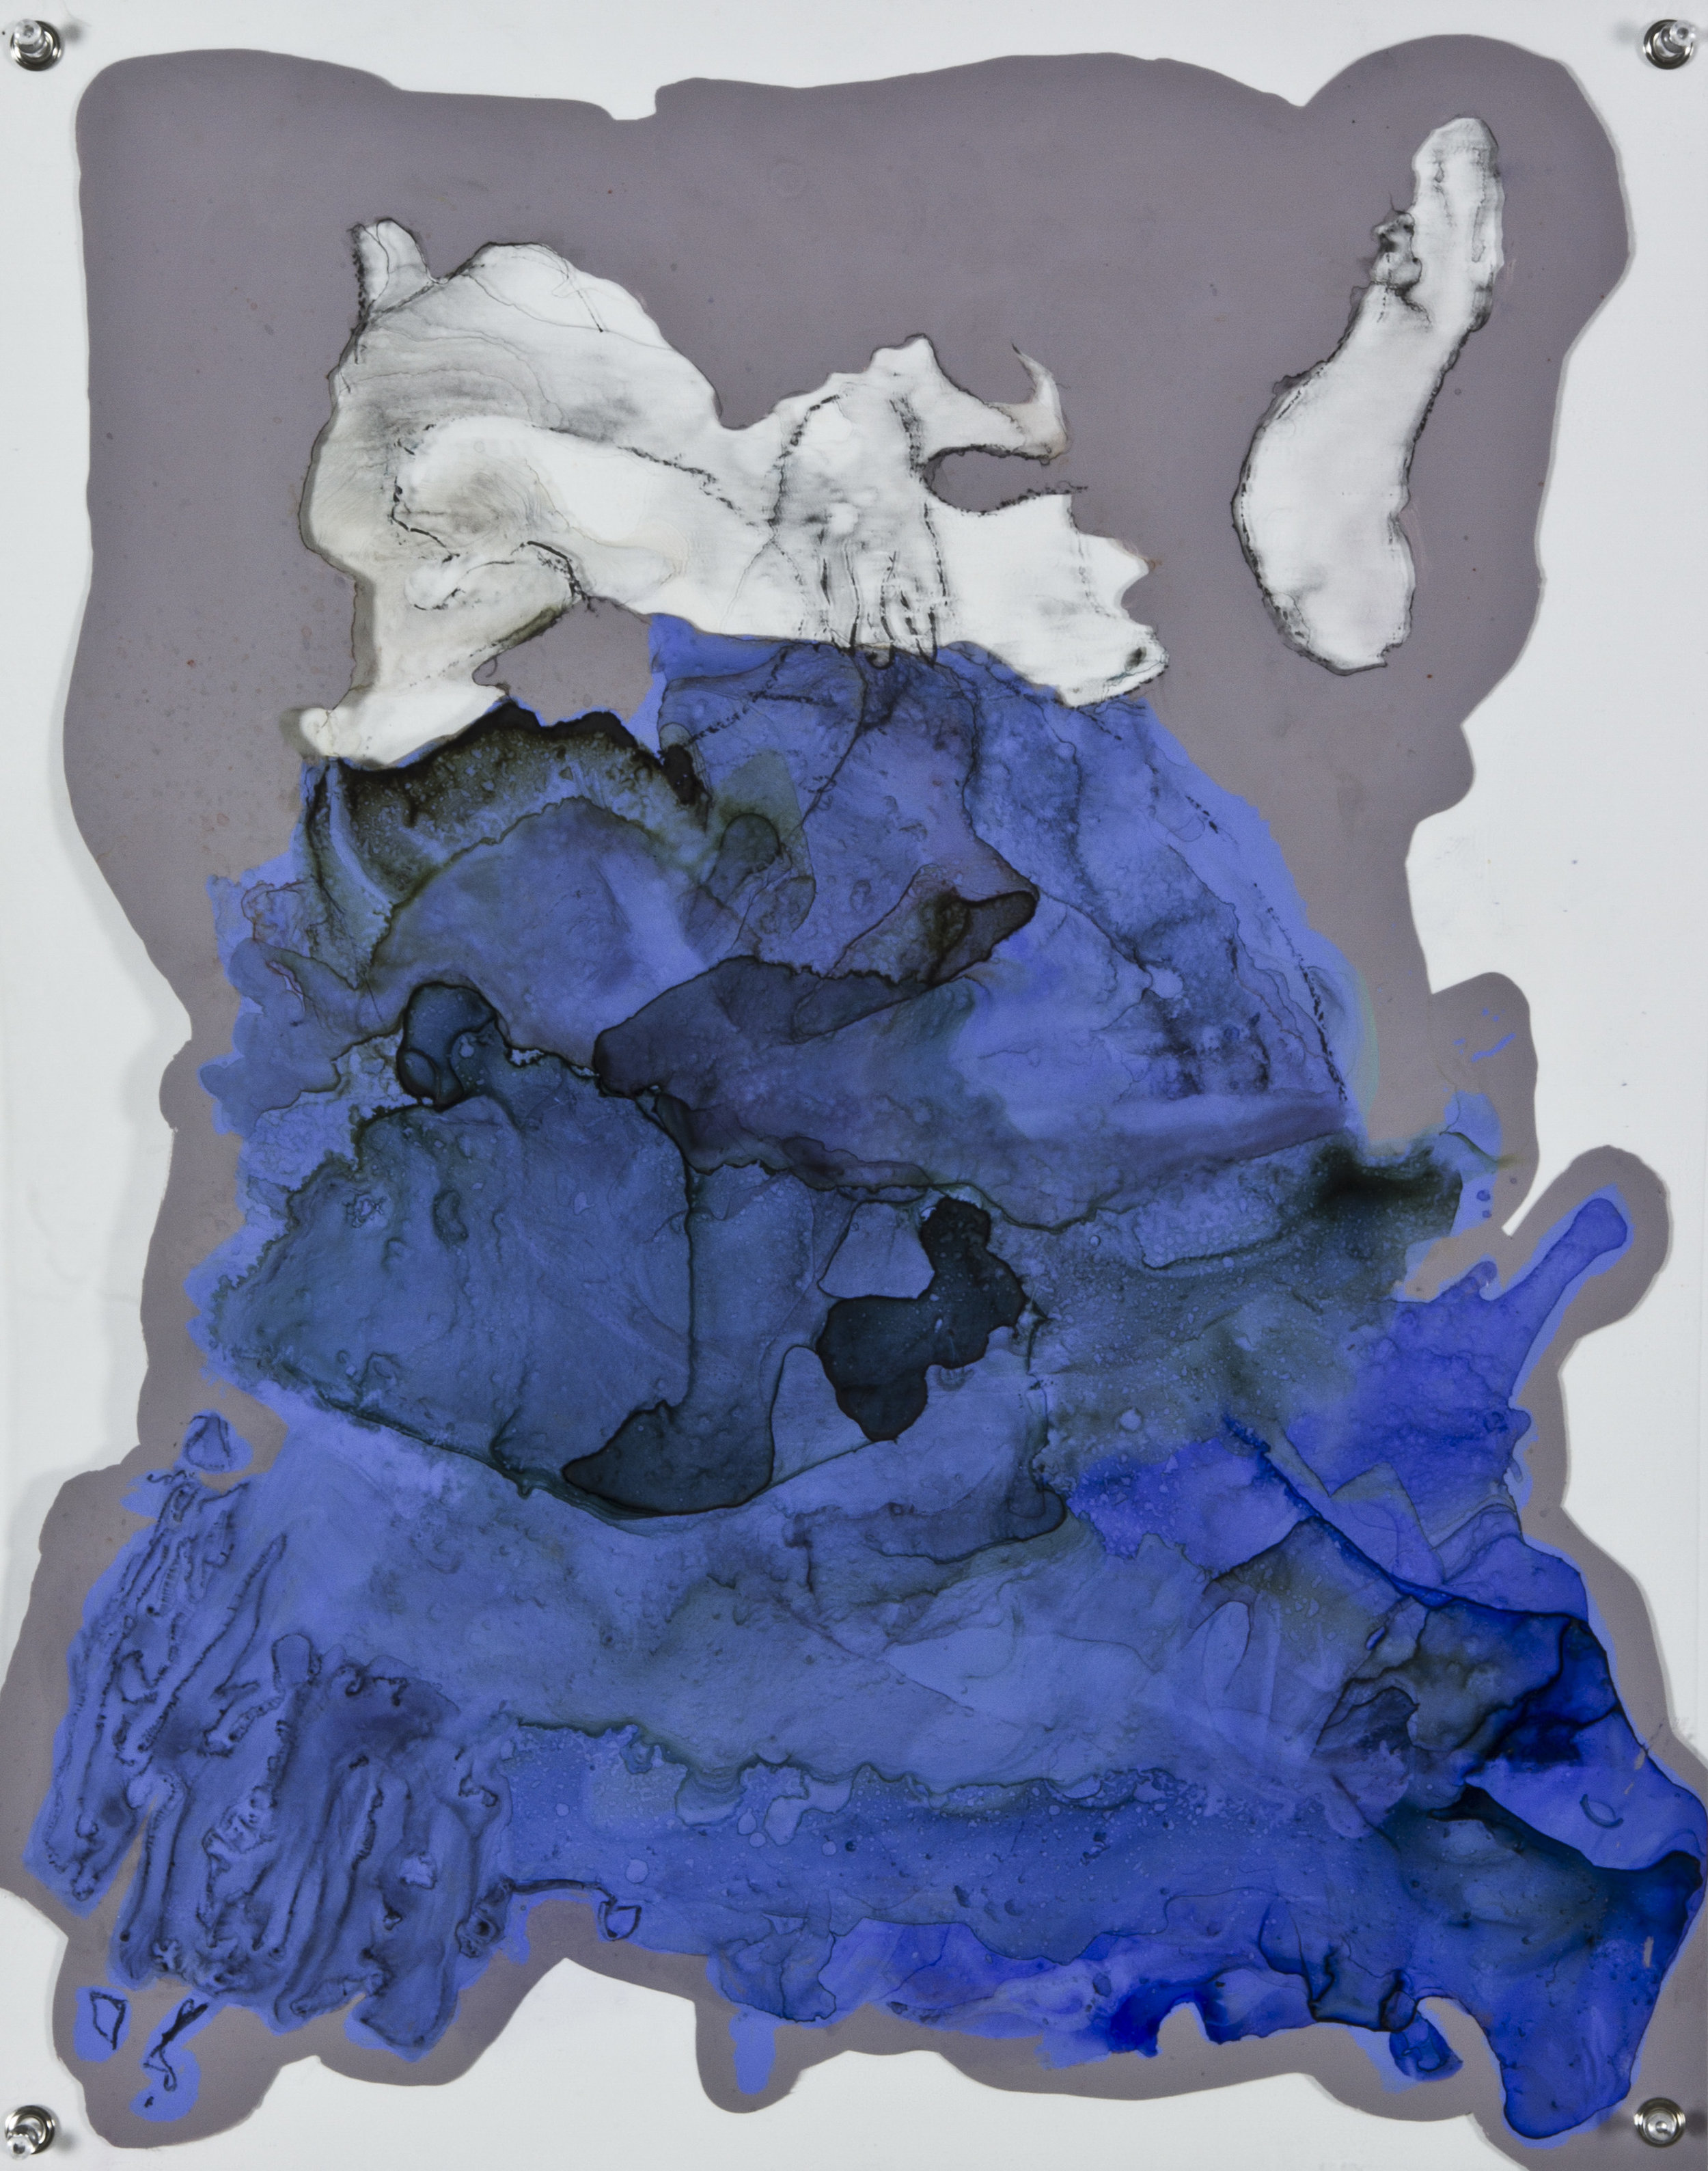 Dismantled Almosts, 2014, watercolor and acrylic on grommeted mylar, 18x24 inches